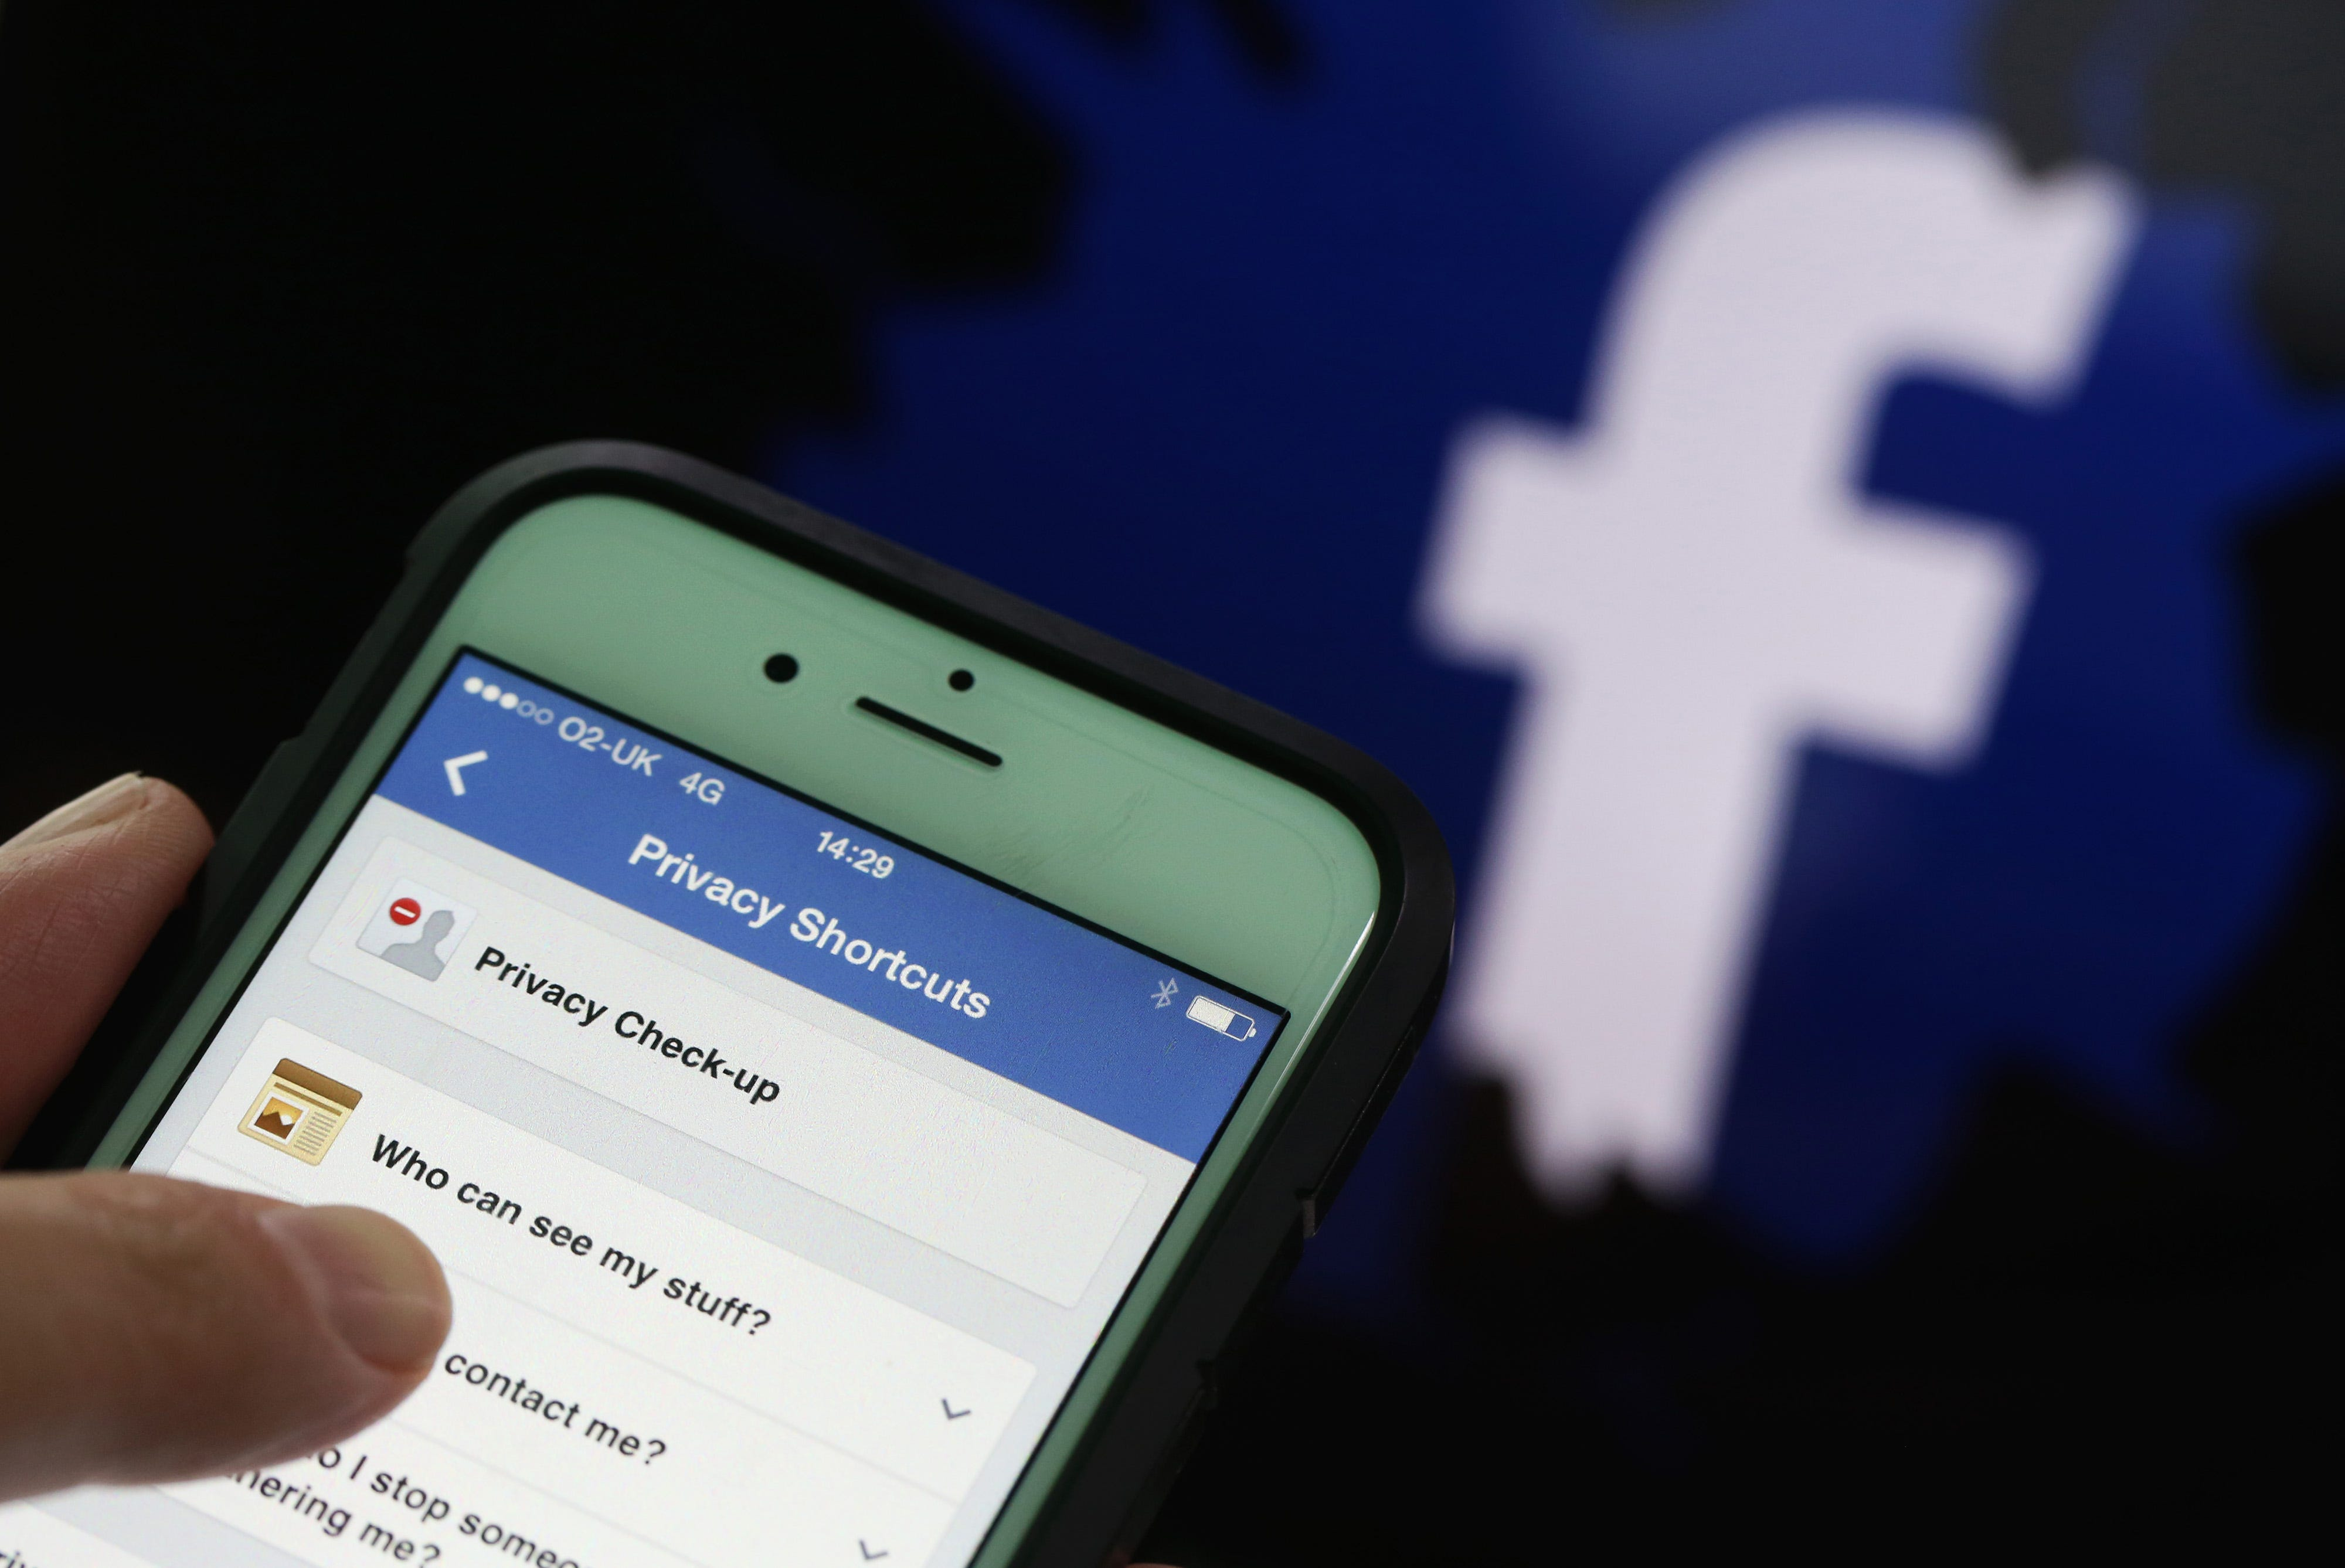 Facebook has 'no plans' to listen in on your conversations (for now), but the creepy stories mount